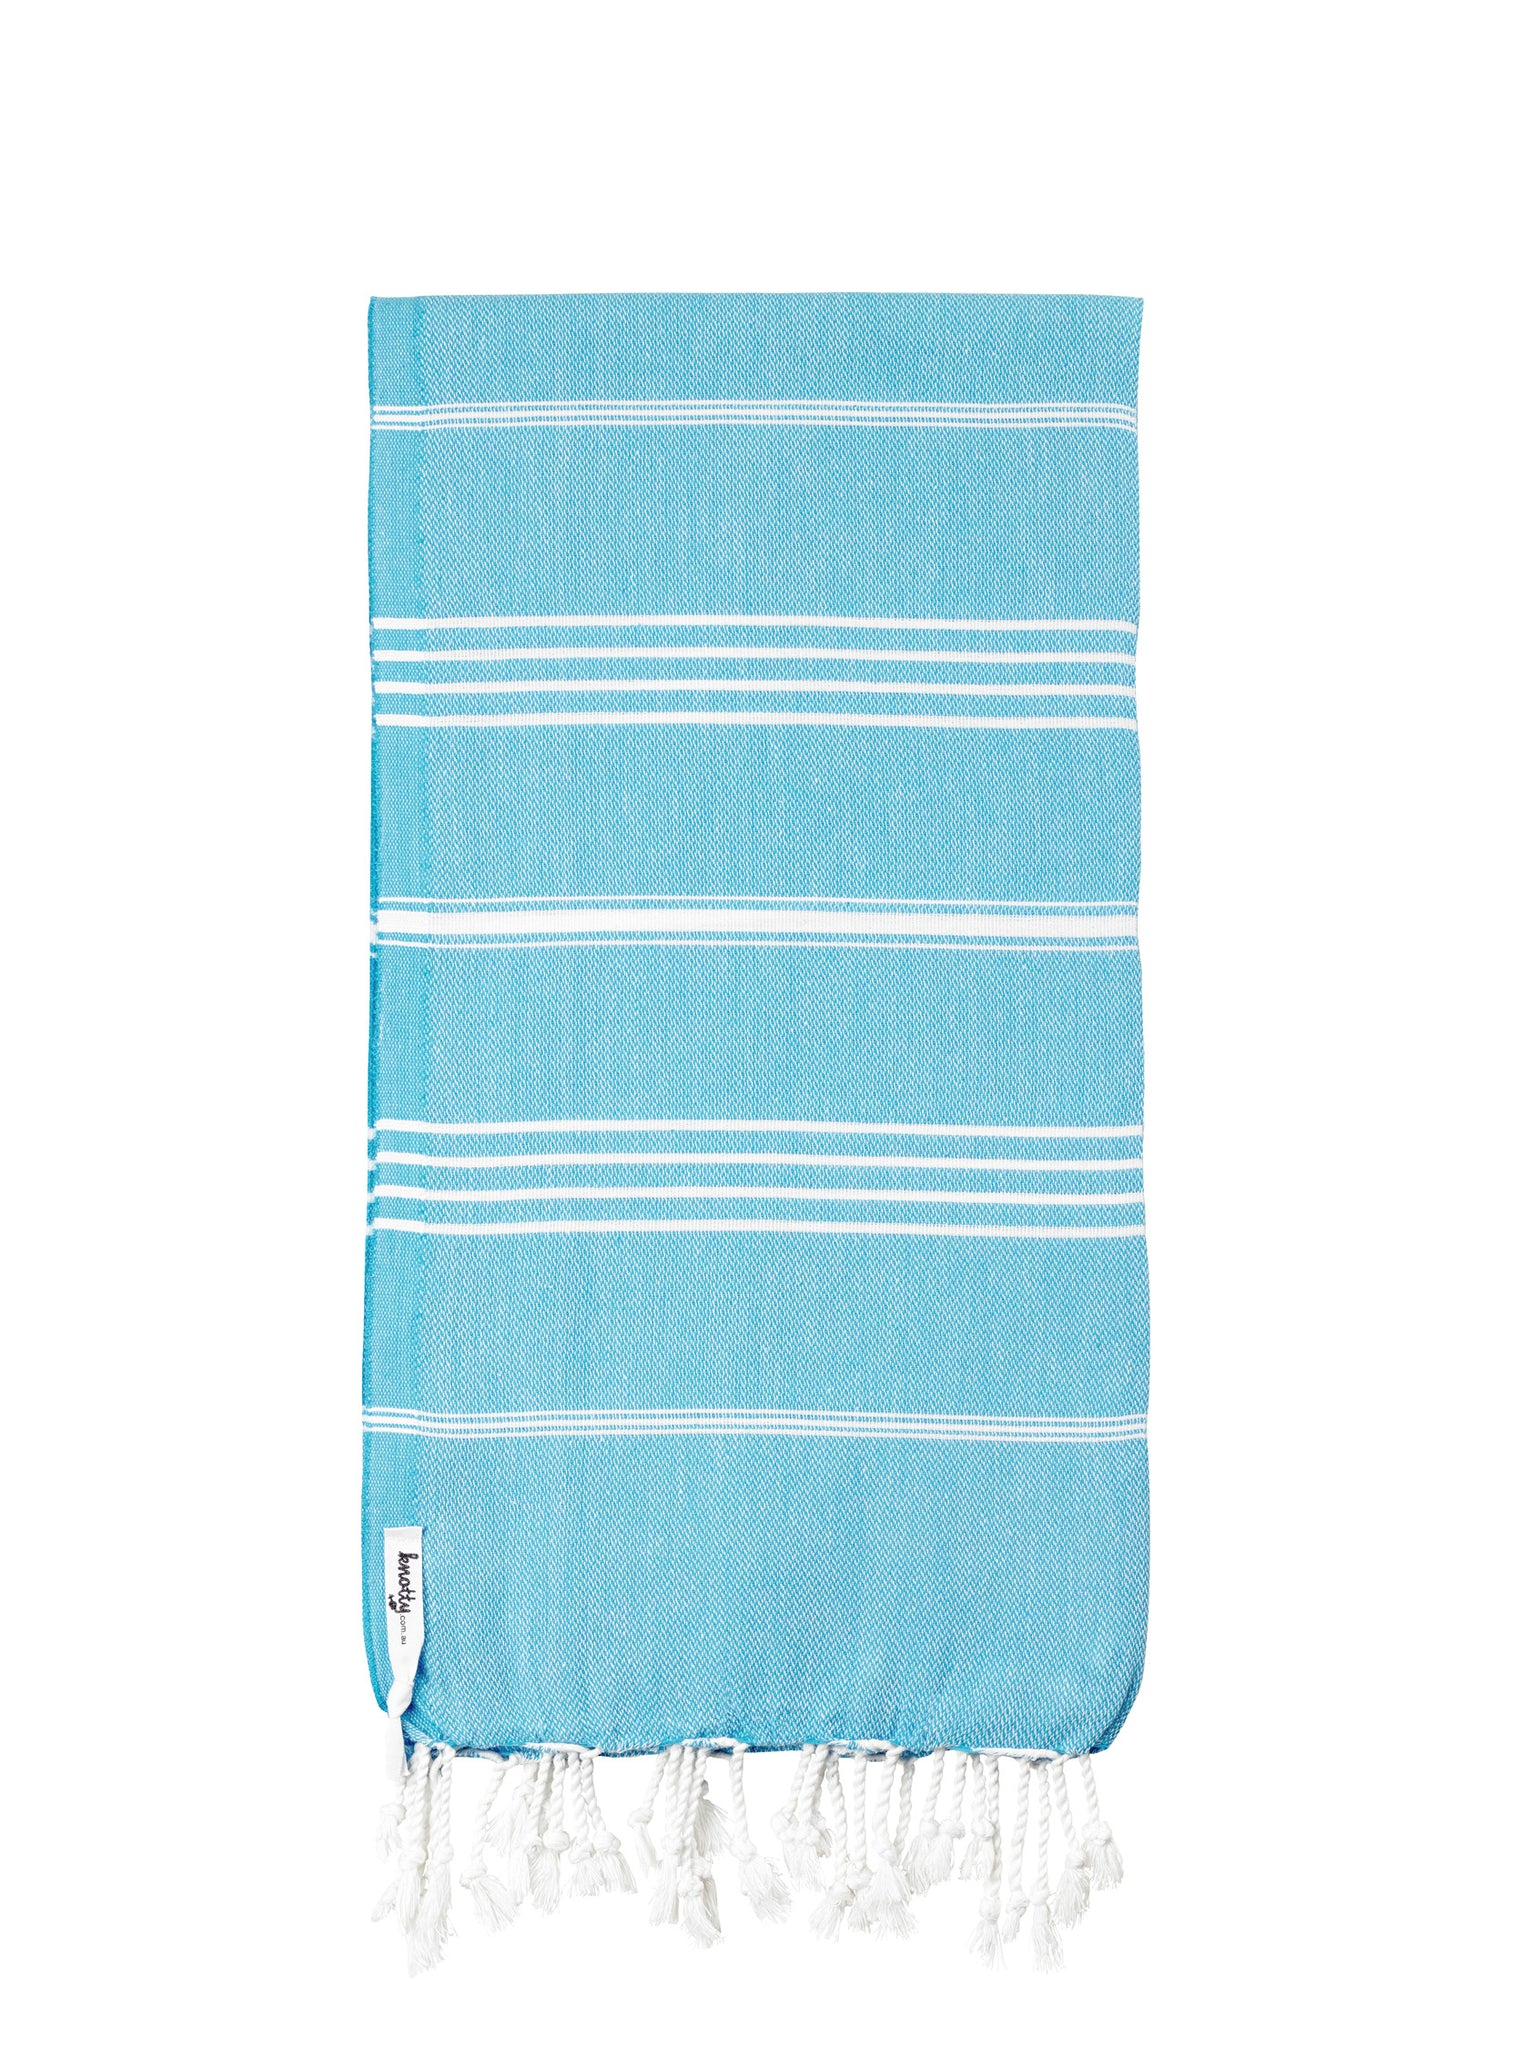 Knotty Towels - Originals - MARINE